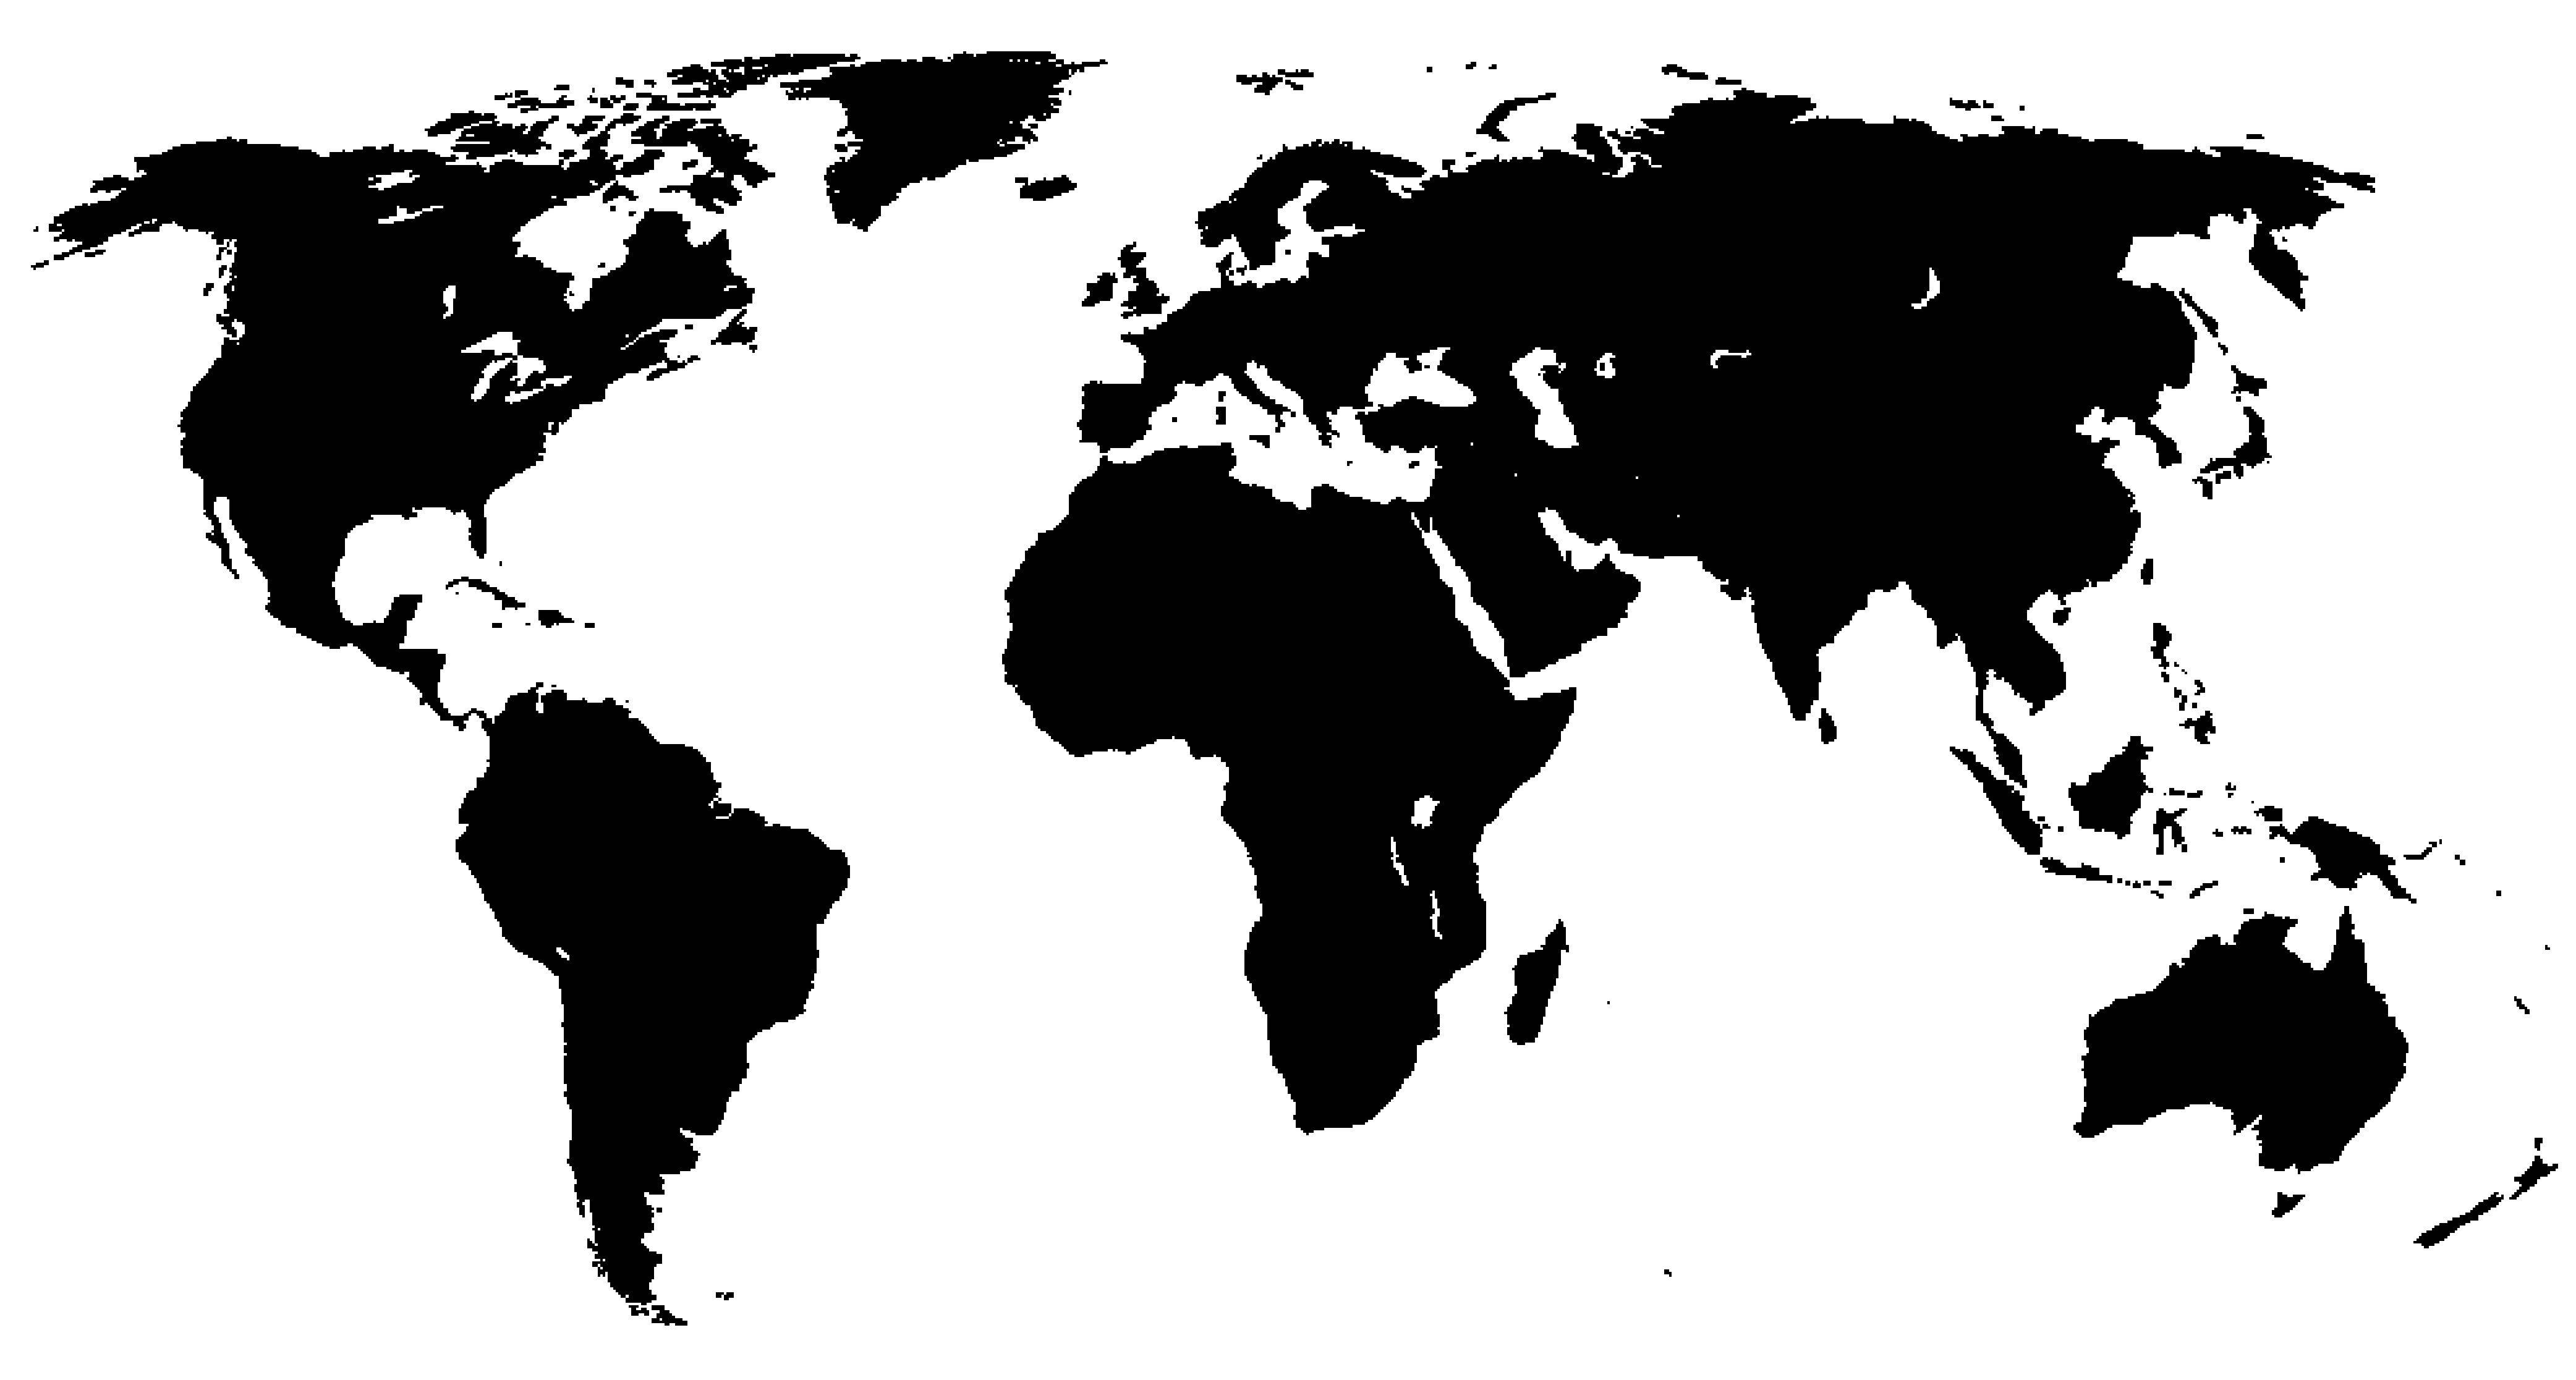 World map black and white png. Poster scrapsofme me best